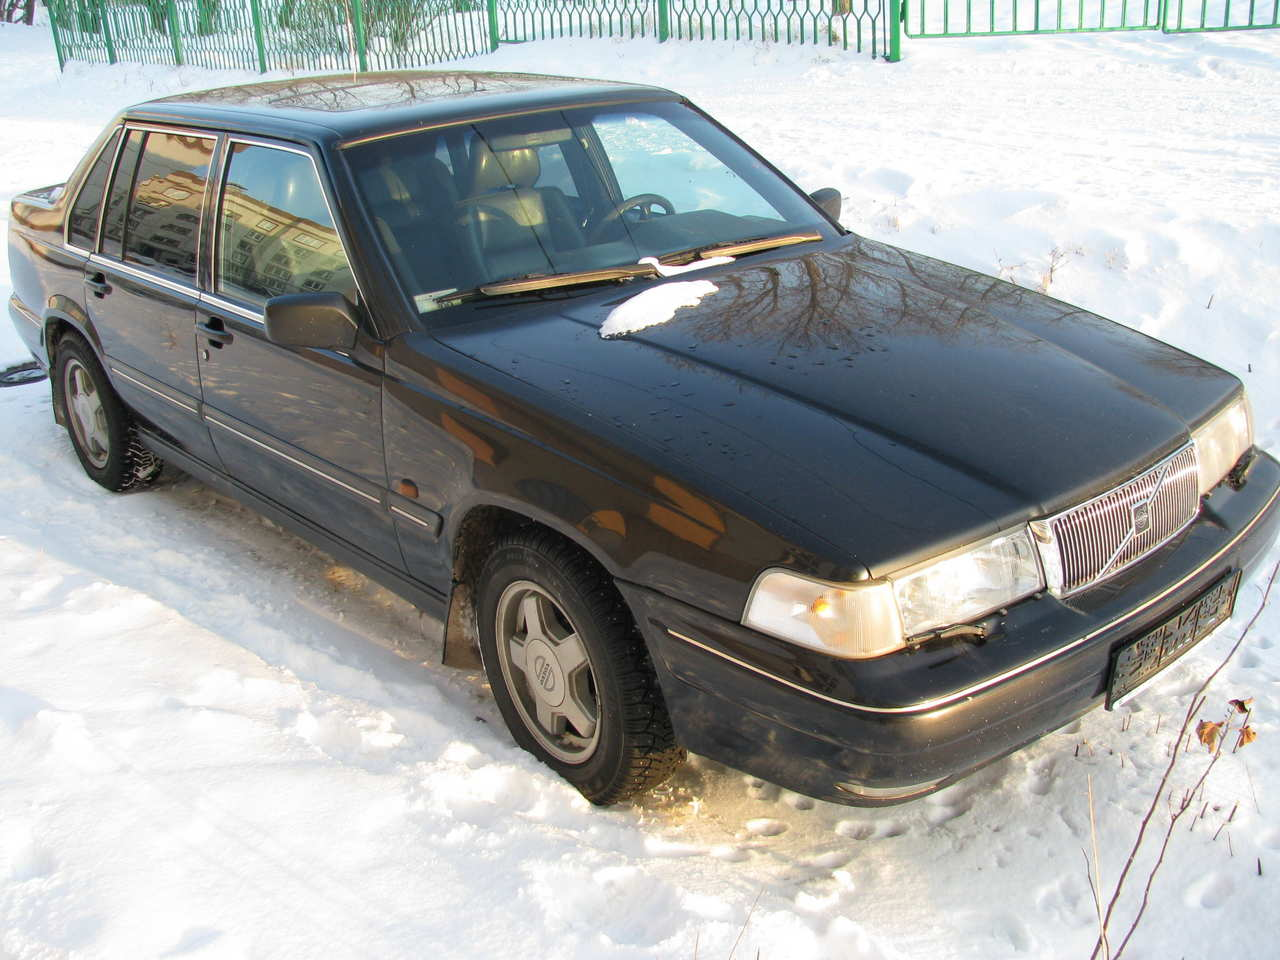 used 1994 volvo 960 photos 3000cc gasoline fr or rr automatic for sale. Black Bedroom Furniture Sets. Home Design Ideas